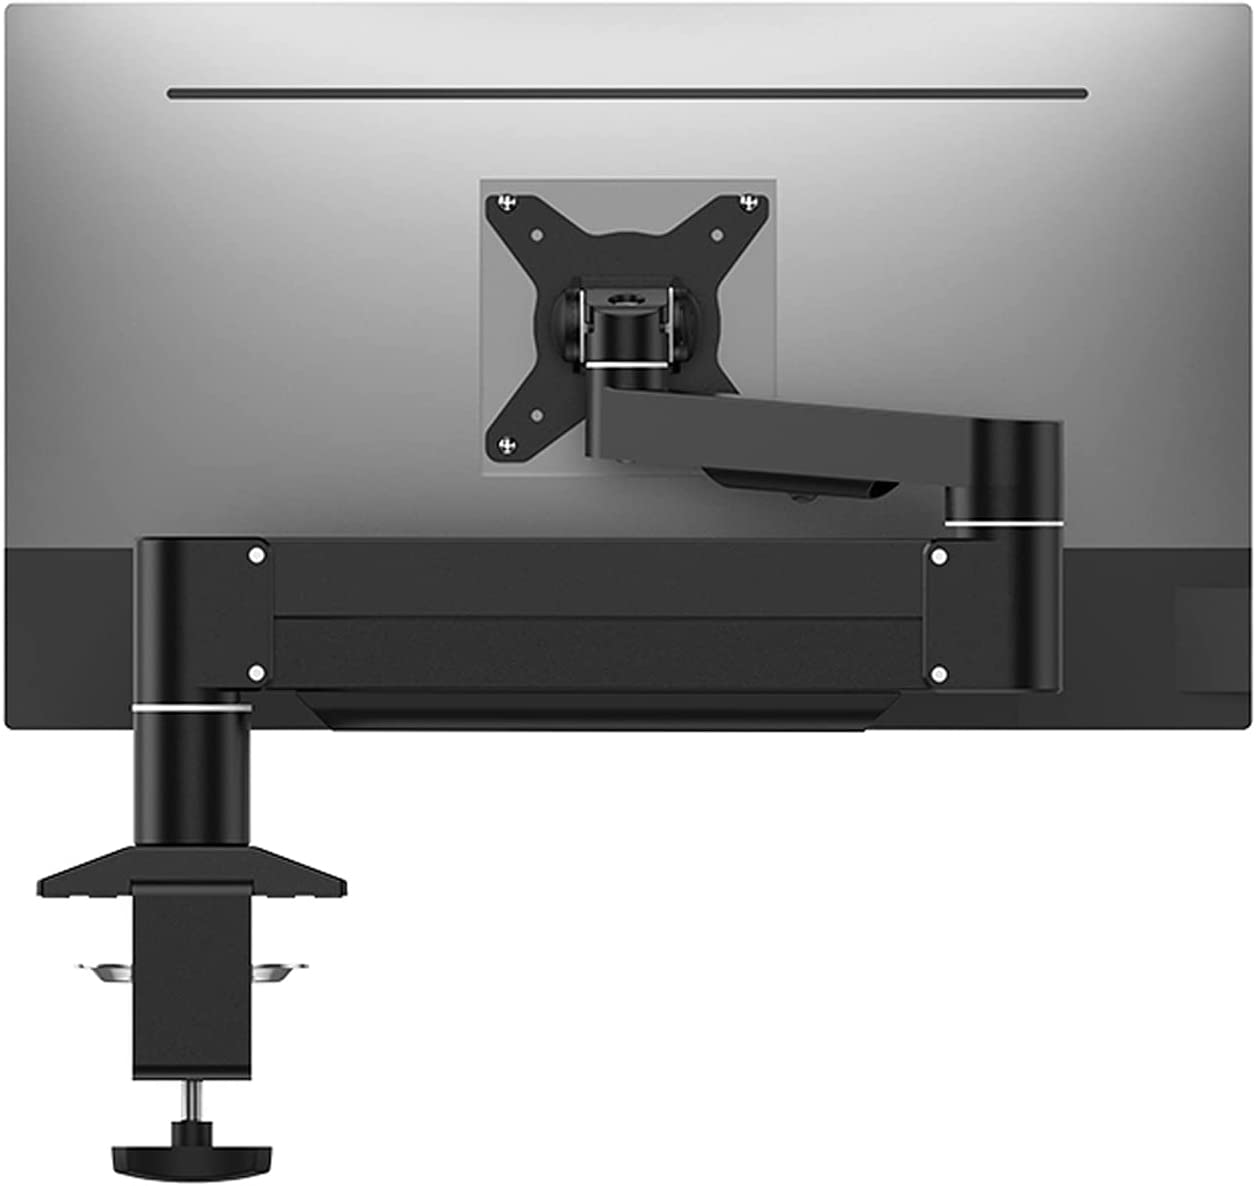 Monitor Mount Single Max Our shop most popular 48% OFF Desk Stand Arm Heavy